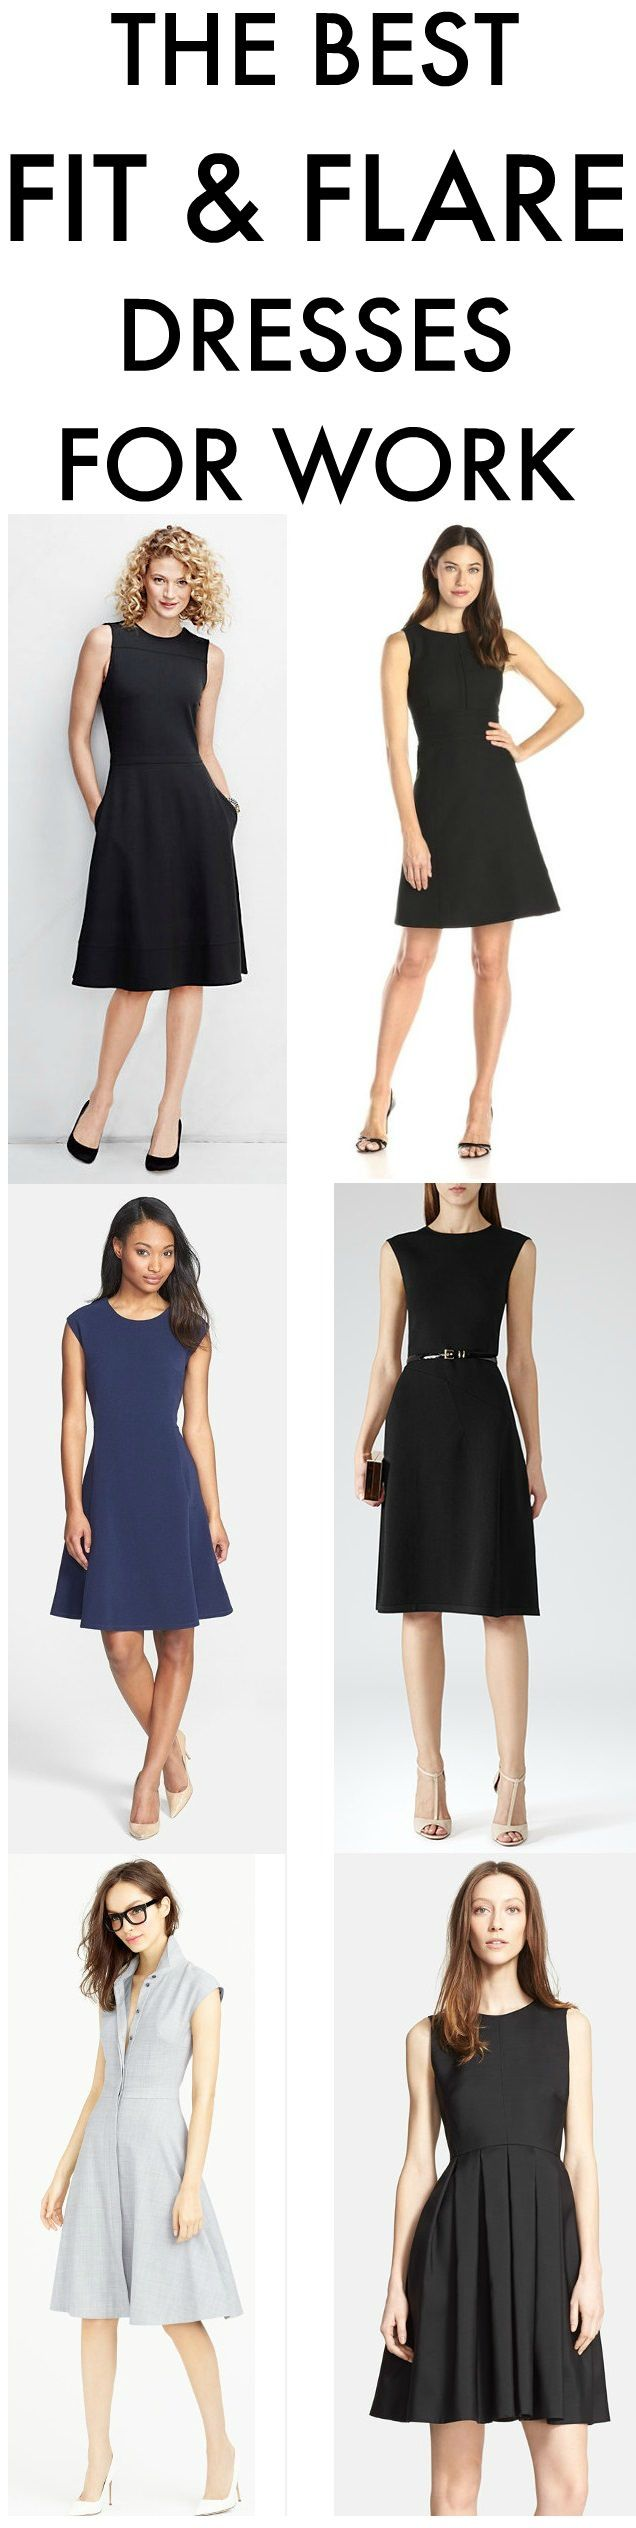 Fit and flare dresses make great work outfits -- we rounded up some of the best for all shapes and sizes. Which are your favorite flared dresses for work?